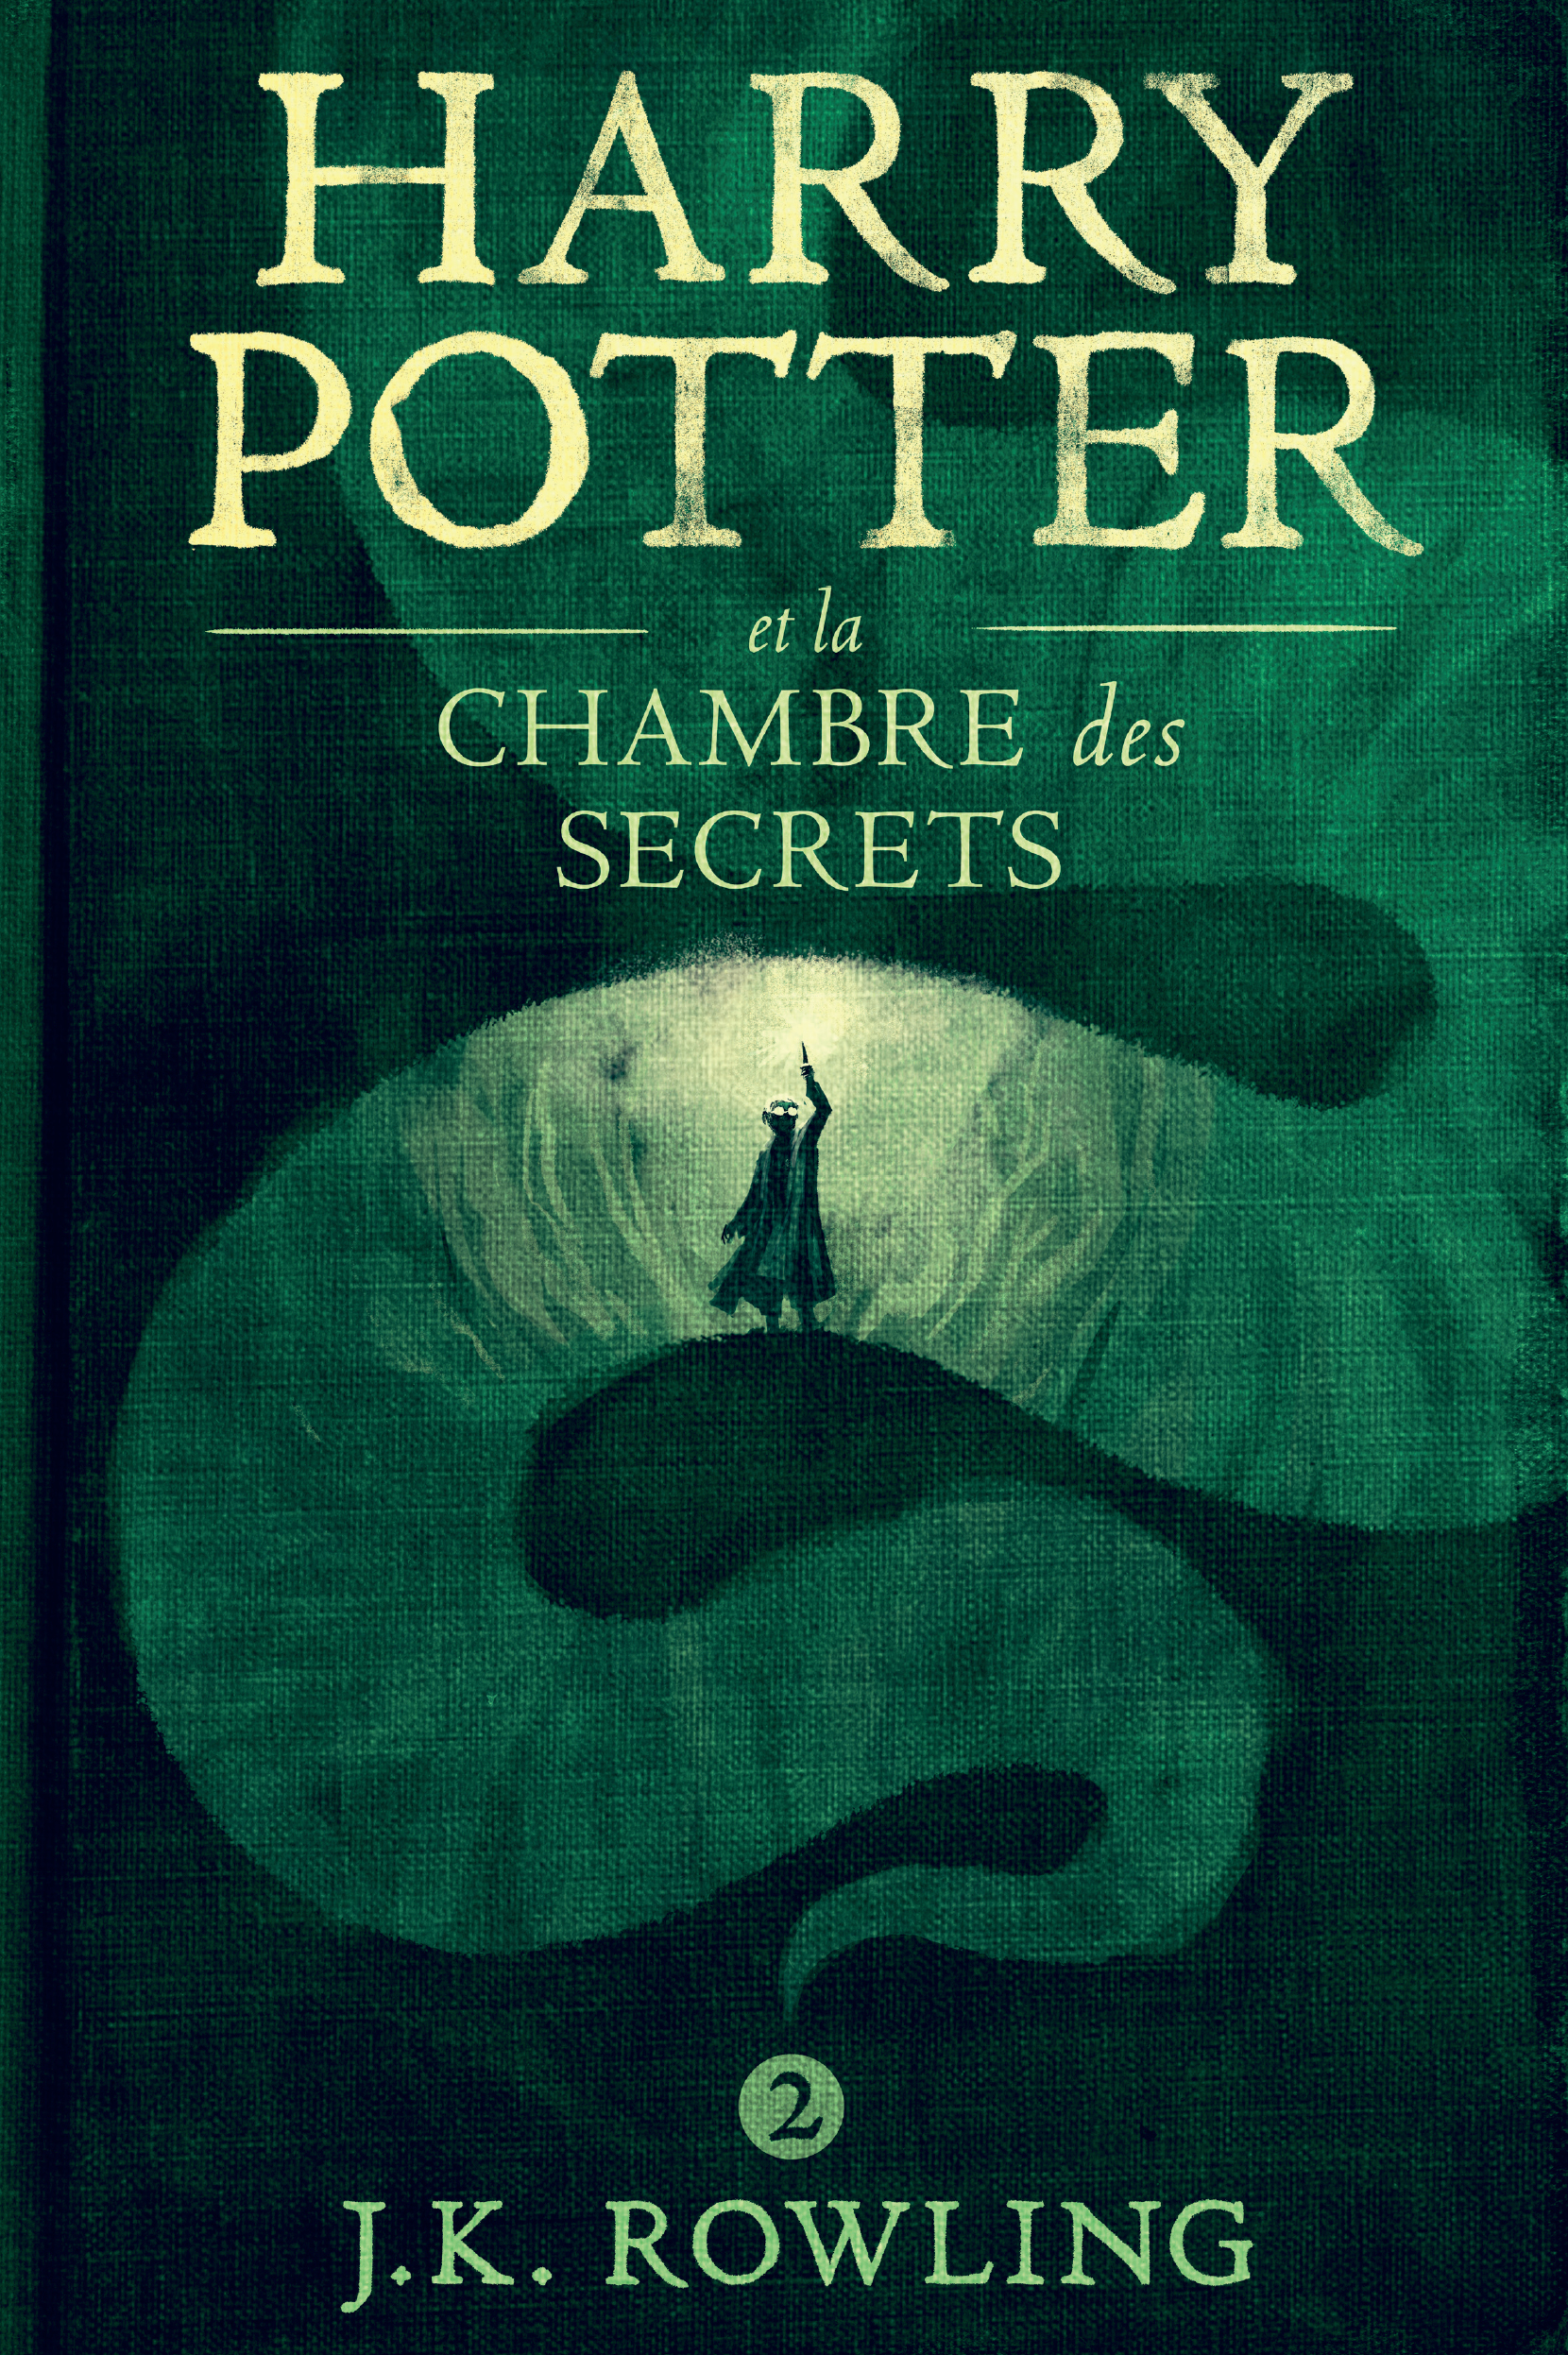 Harry potter et la chambre des secrets by j k rowling and - Harry potter et la chambre des secrets pdf ...